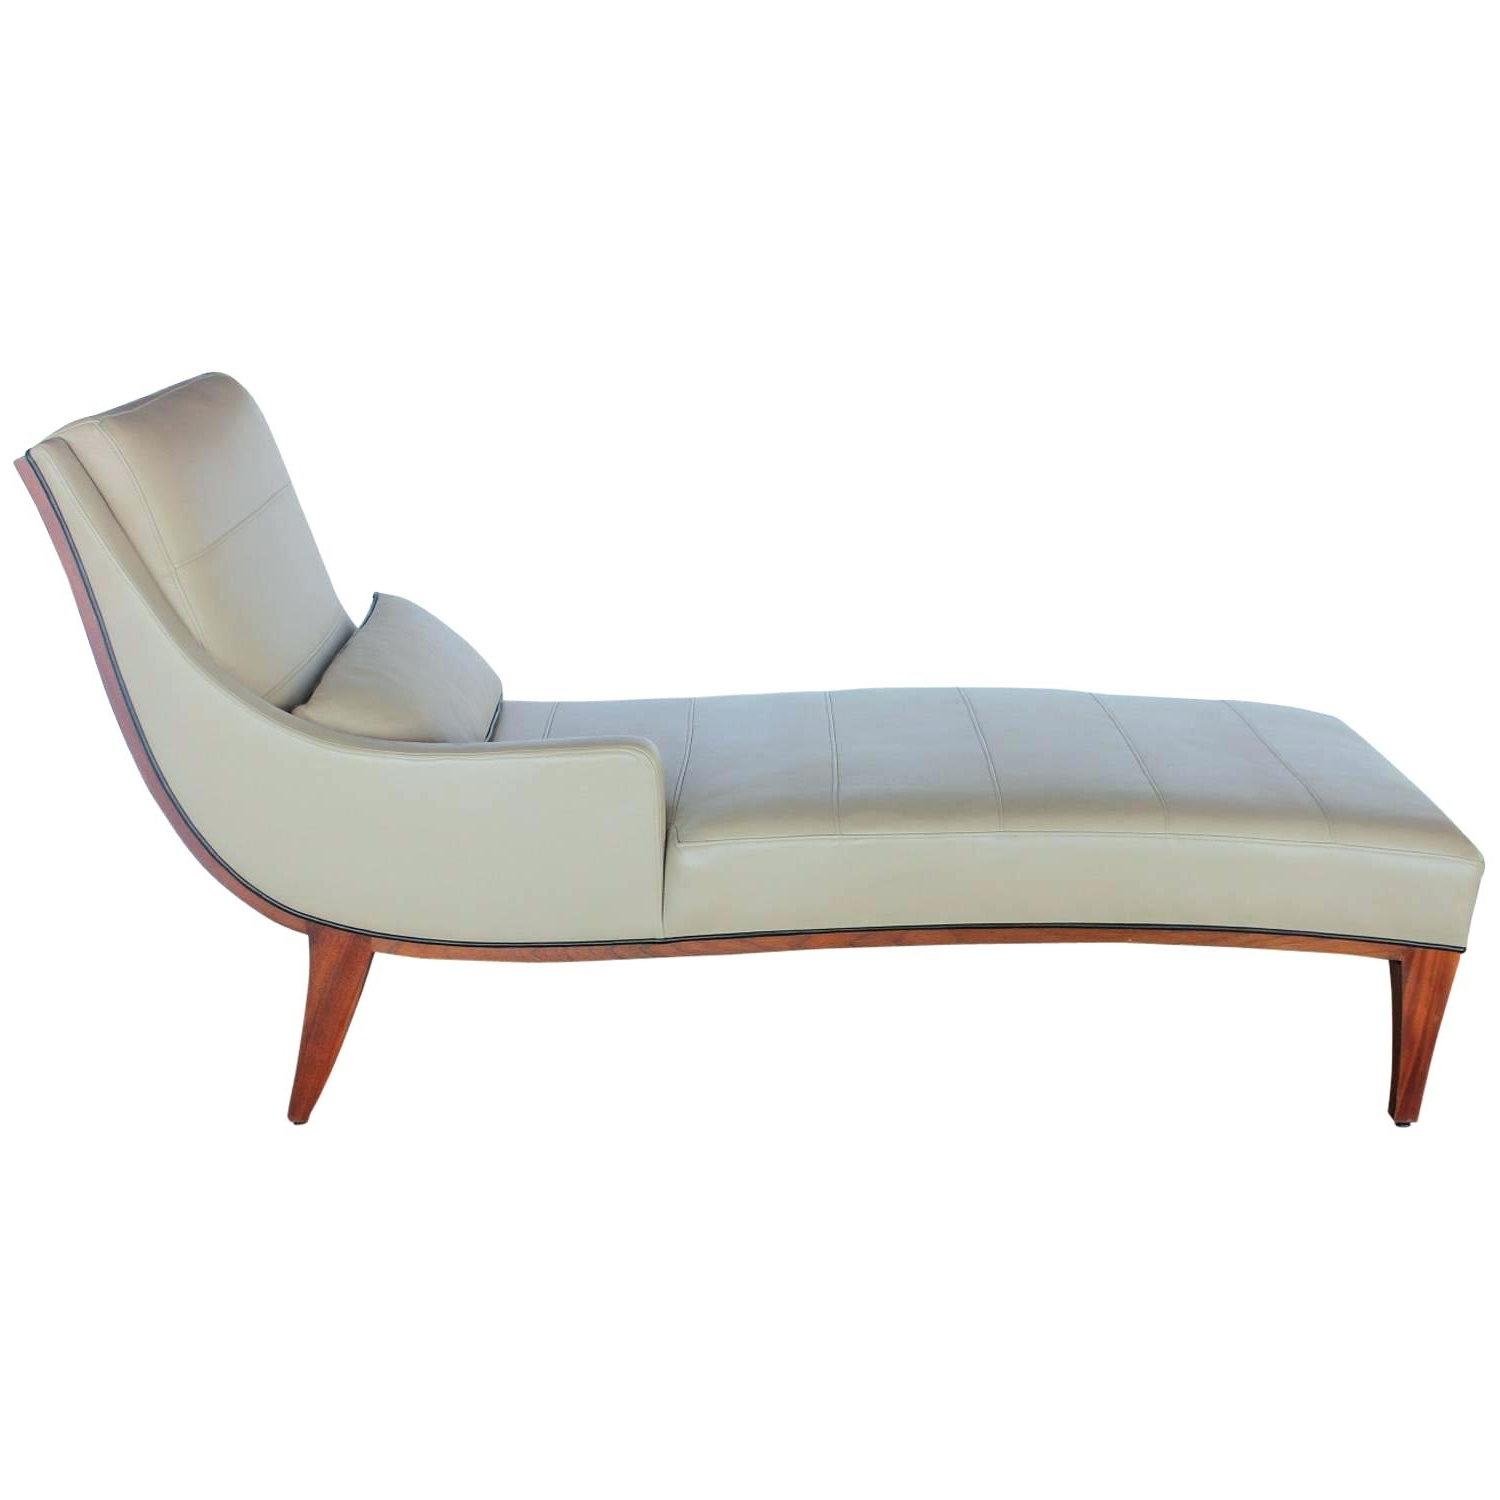 Favorite Vintage Outdoor Chaise Lounge Chairs With Regard To Vintage Outdoor Chaise Lounge Chairs Antique Chaise Lounge Chair (View 12 of 15)